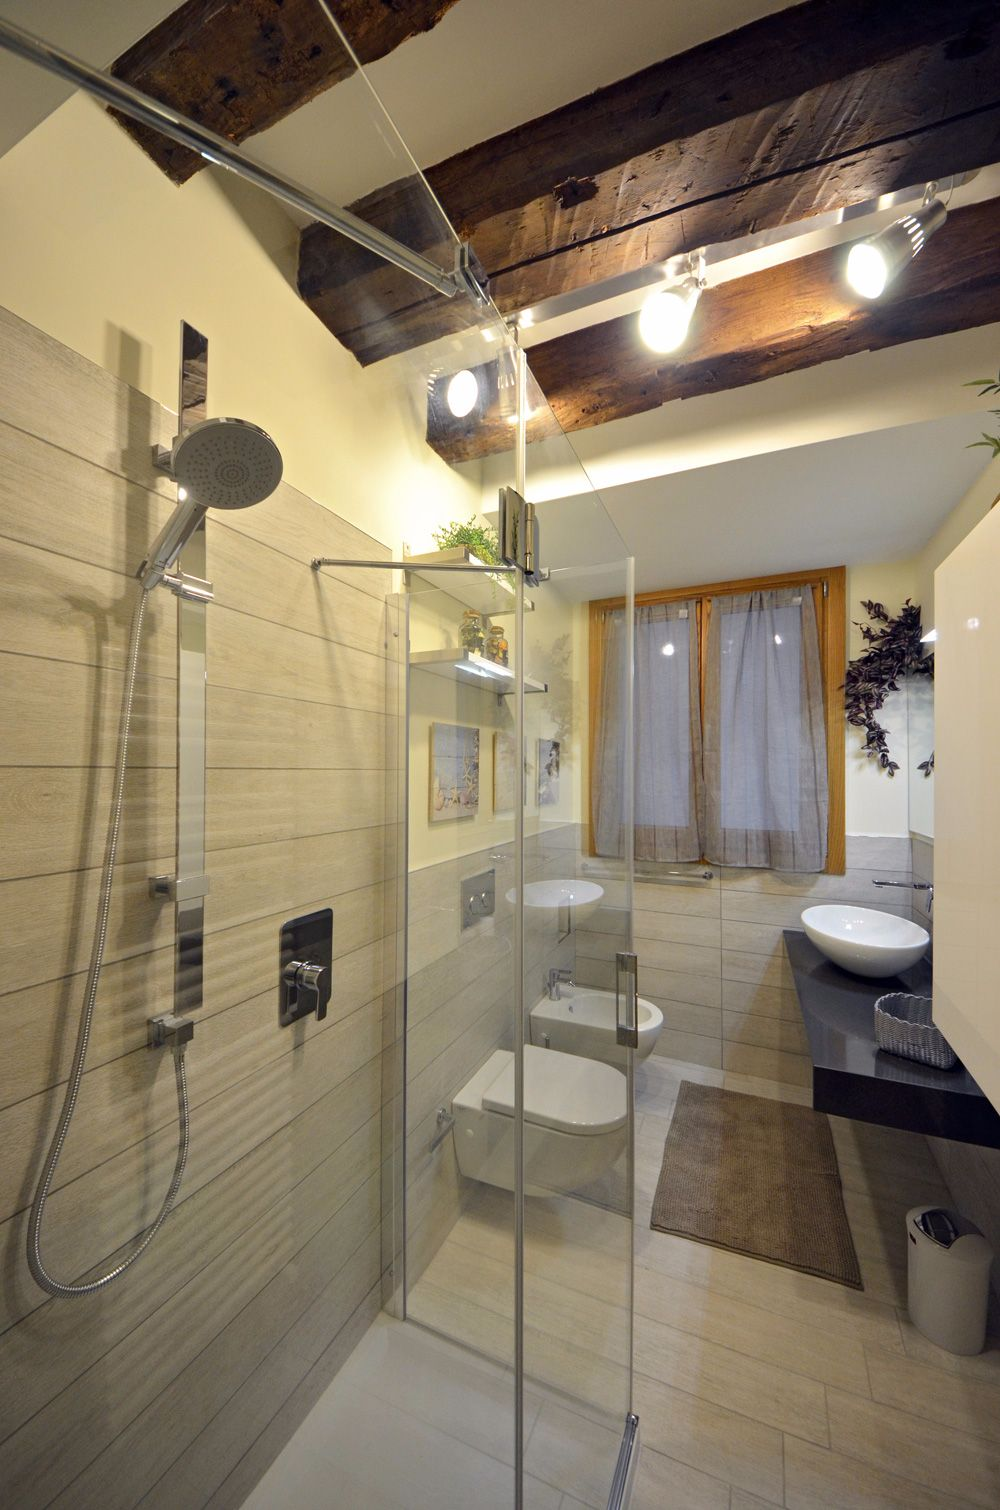 bathroom of the Cà Pesaro Suite